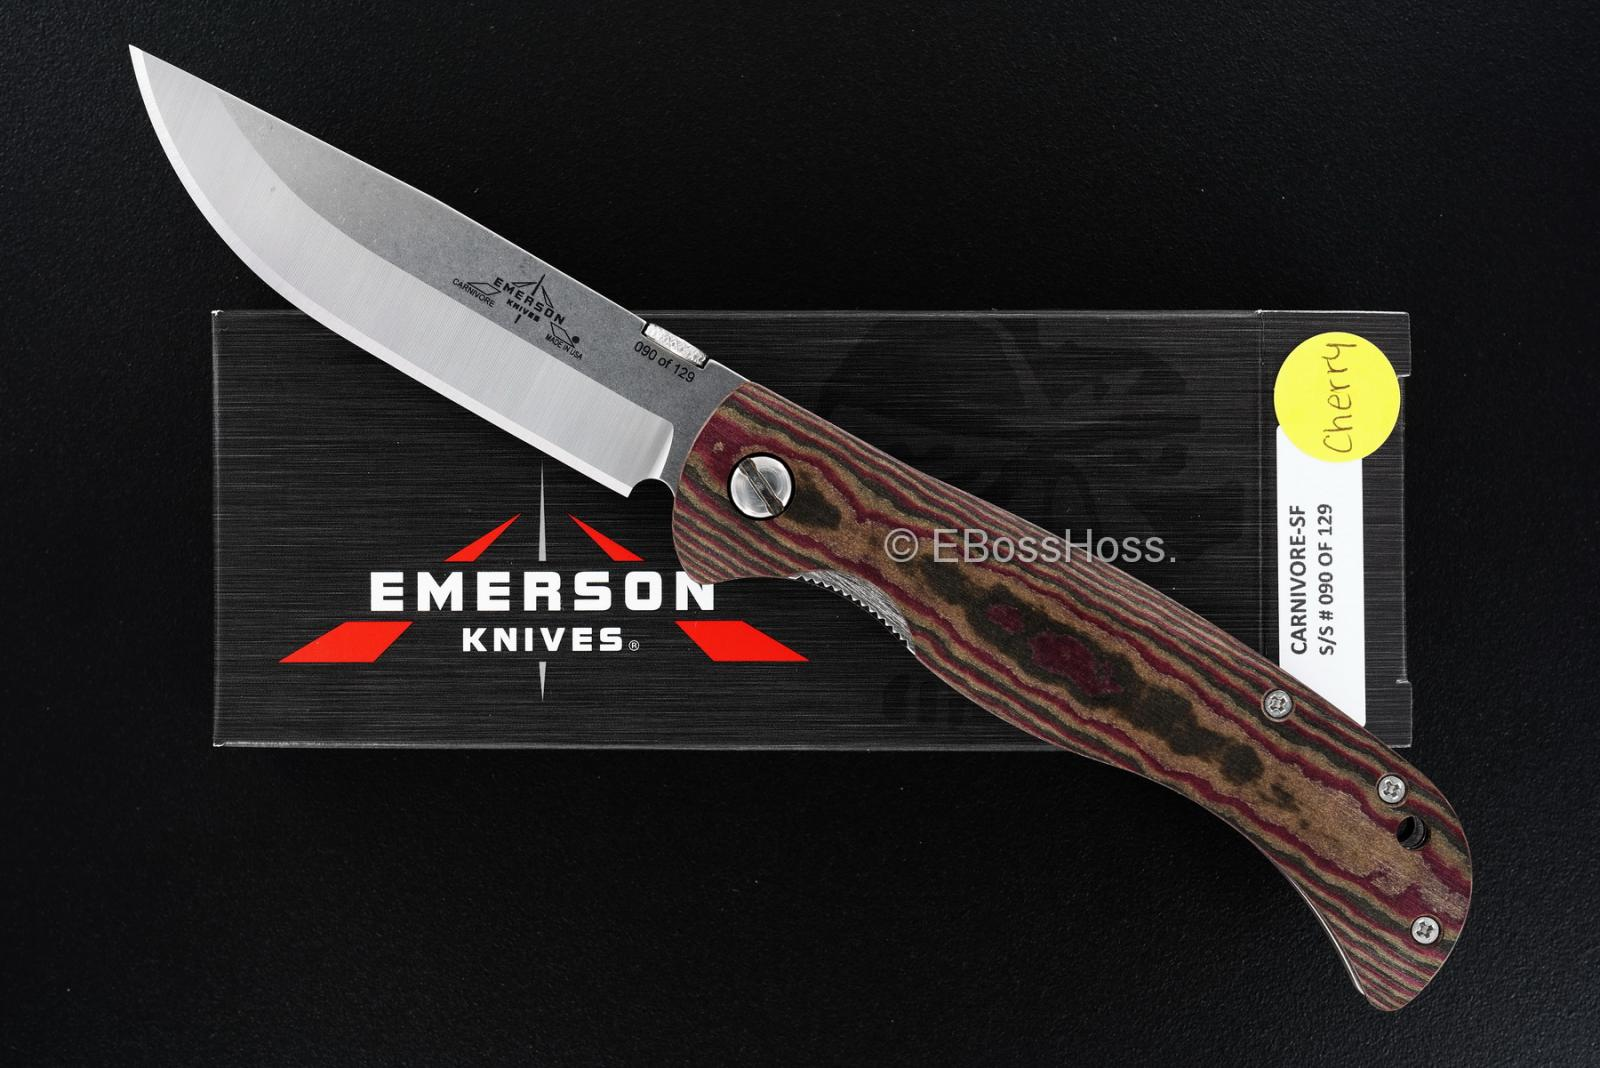 Ernie Emerson EKI Carnivore Folding Steak Knife - Cherry Richlite Handles